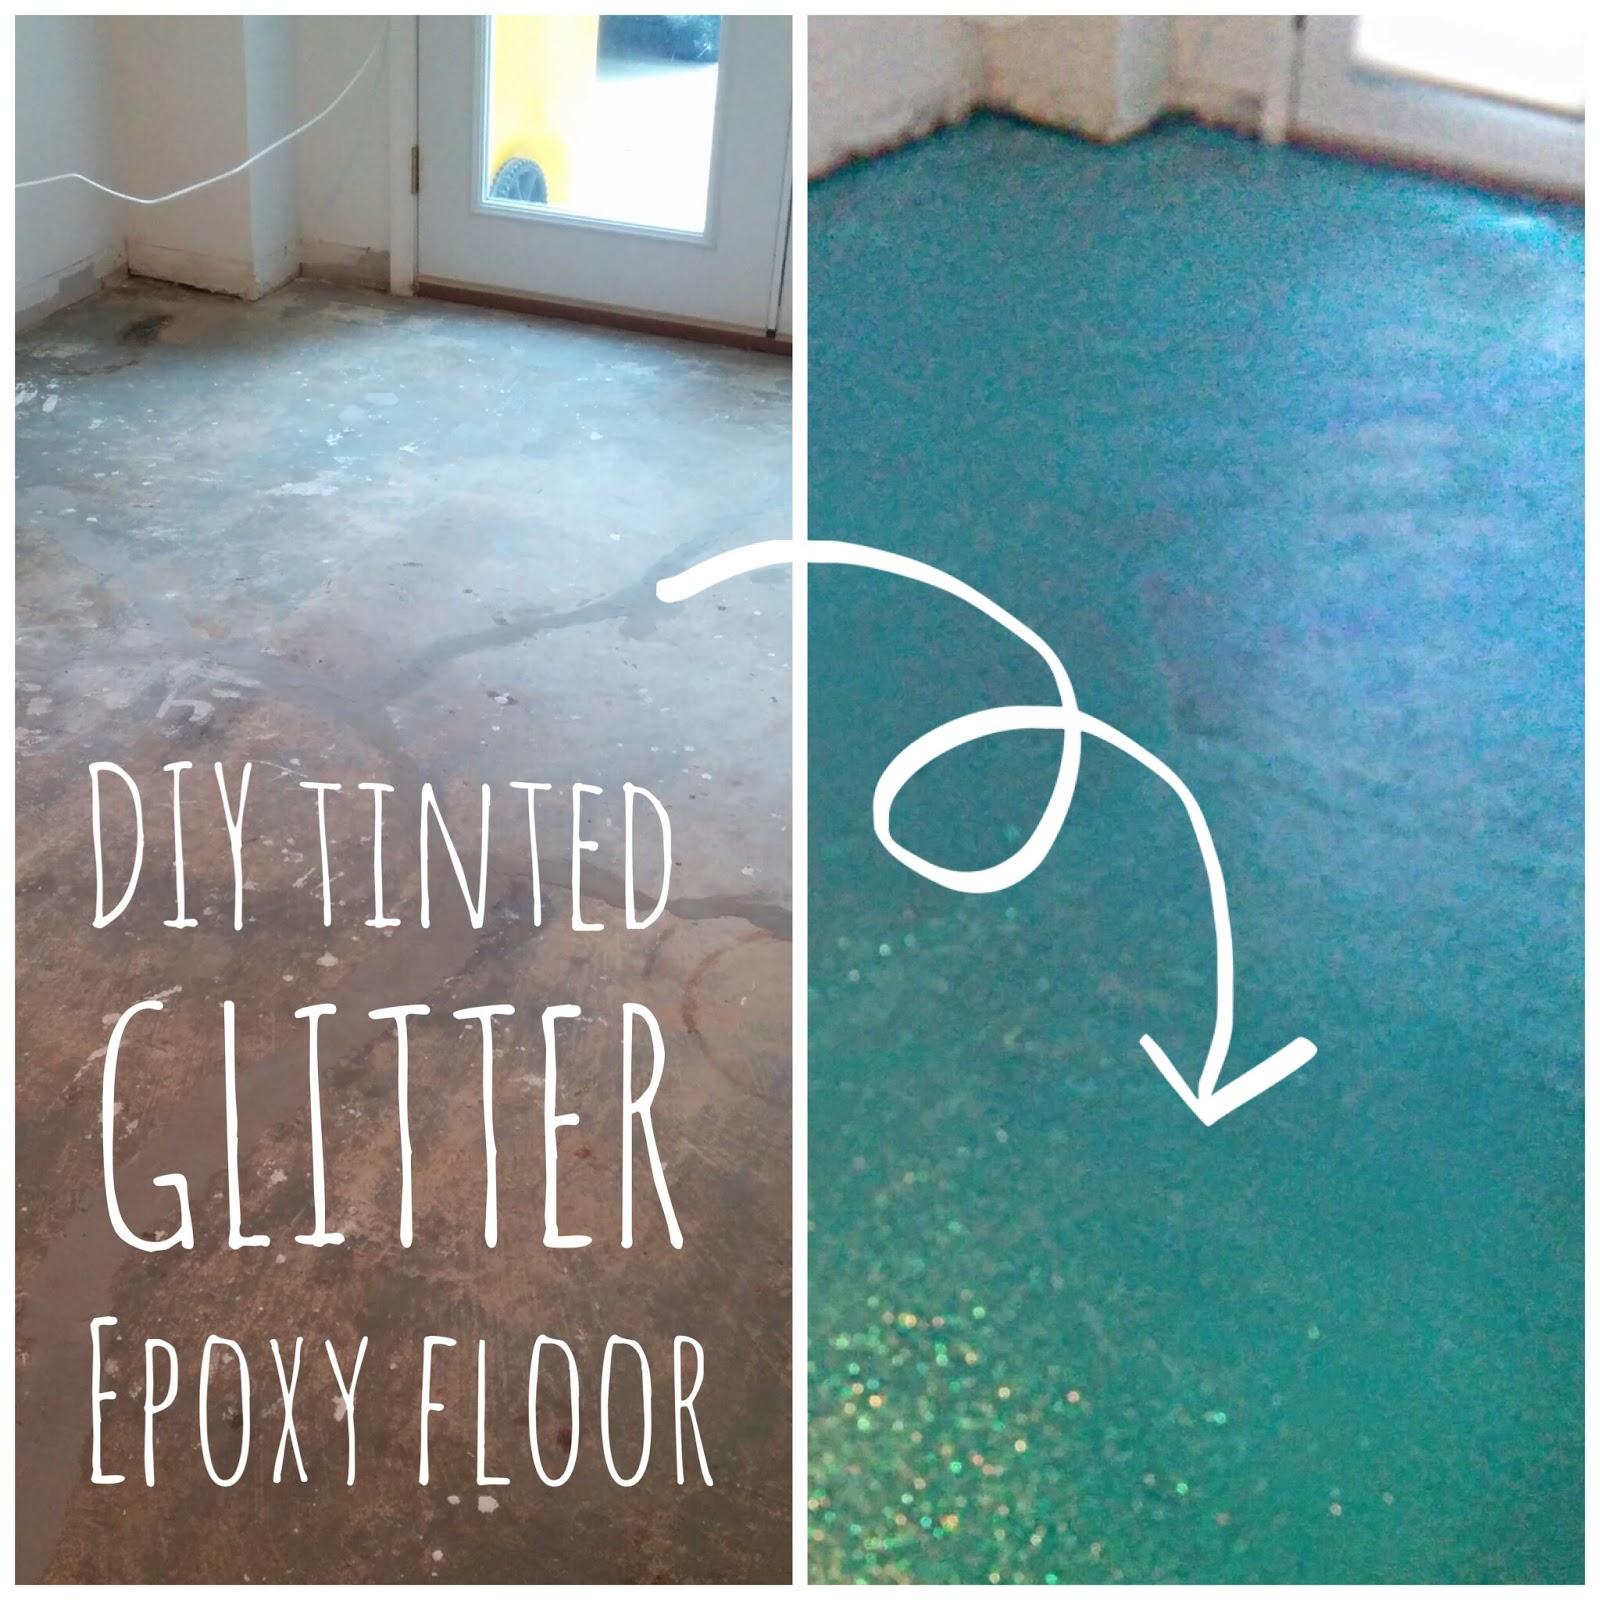 Lola tangled diy turquoise glitter epoxy floor in june of 2014 my husband and i boarded the struggle bus to diy our way to a tinted glitter epoxy floor in what would would soon be converted into my solutioingenieria Choice Image